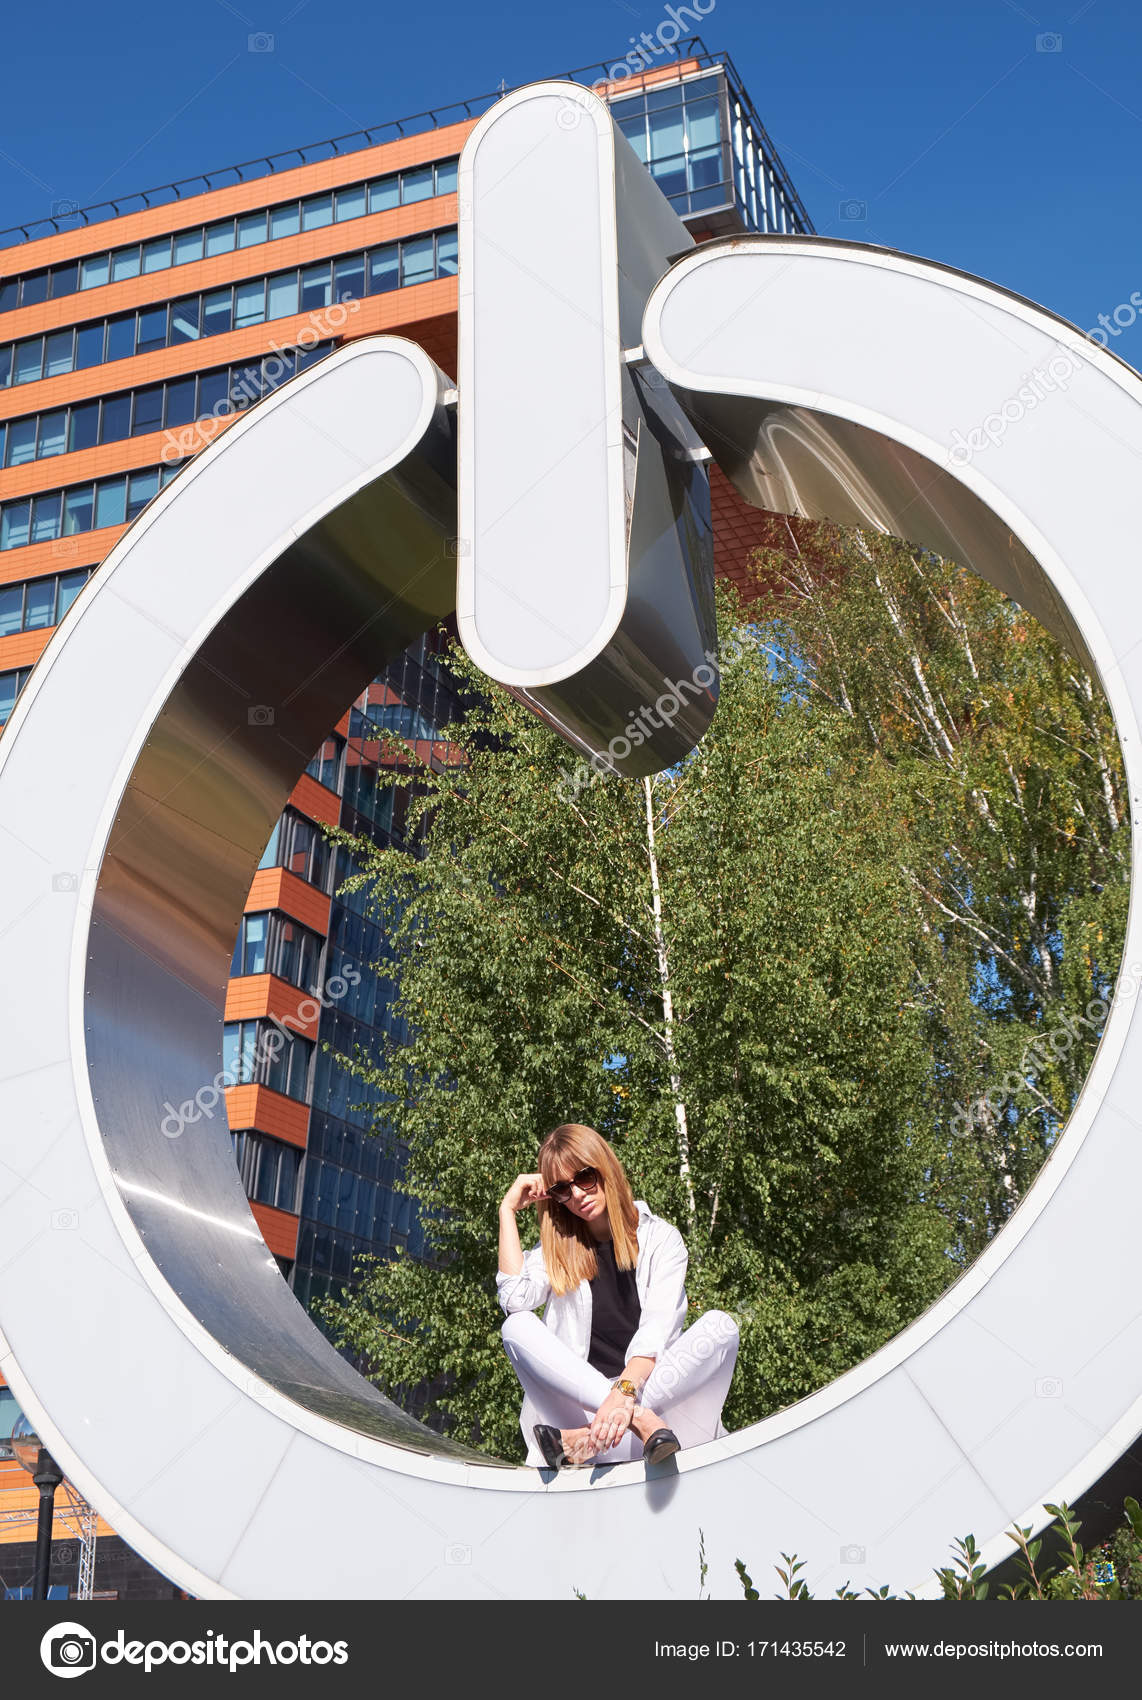 Modern young woman on the steps of symbol of information technol novosibirsk akademgorodok russia september 03 2017 modern young woman in white clothes near symbol of information technology center in akademgorodok biocorpaavc Images